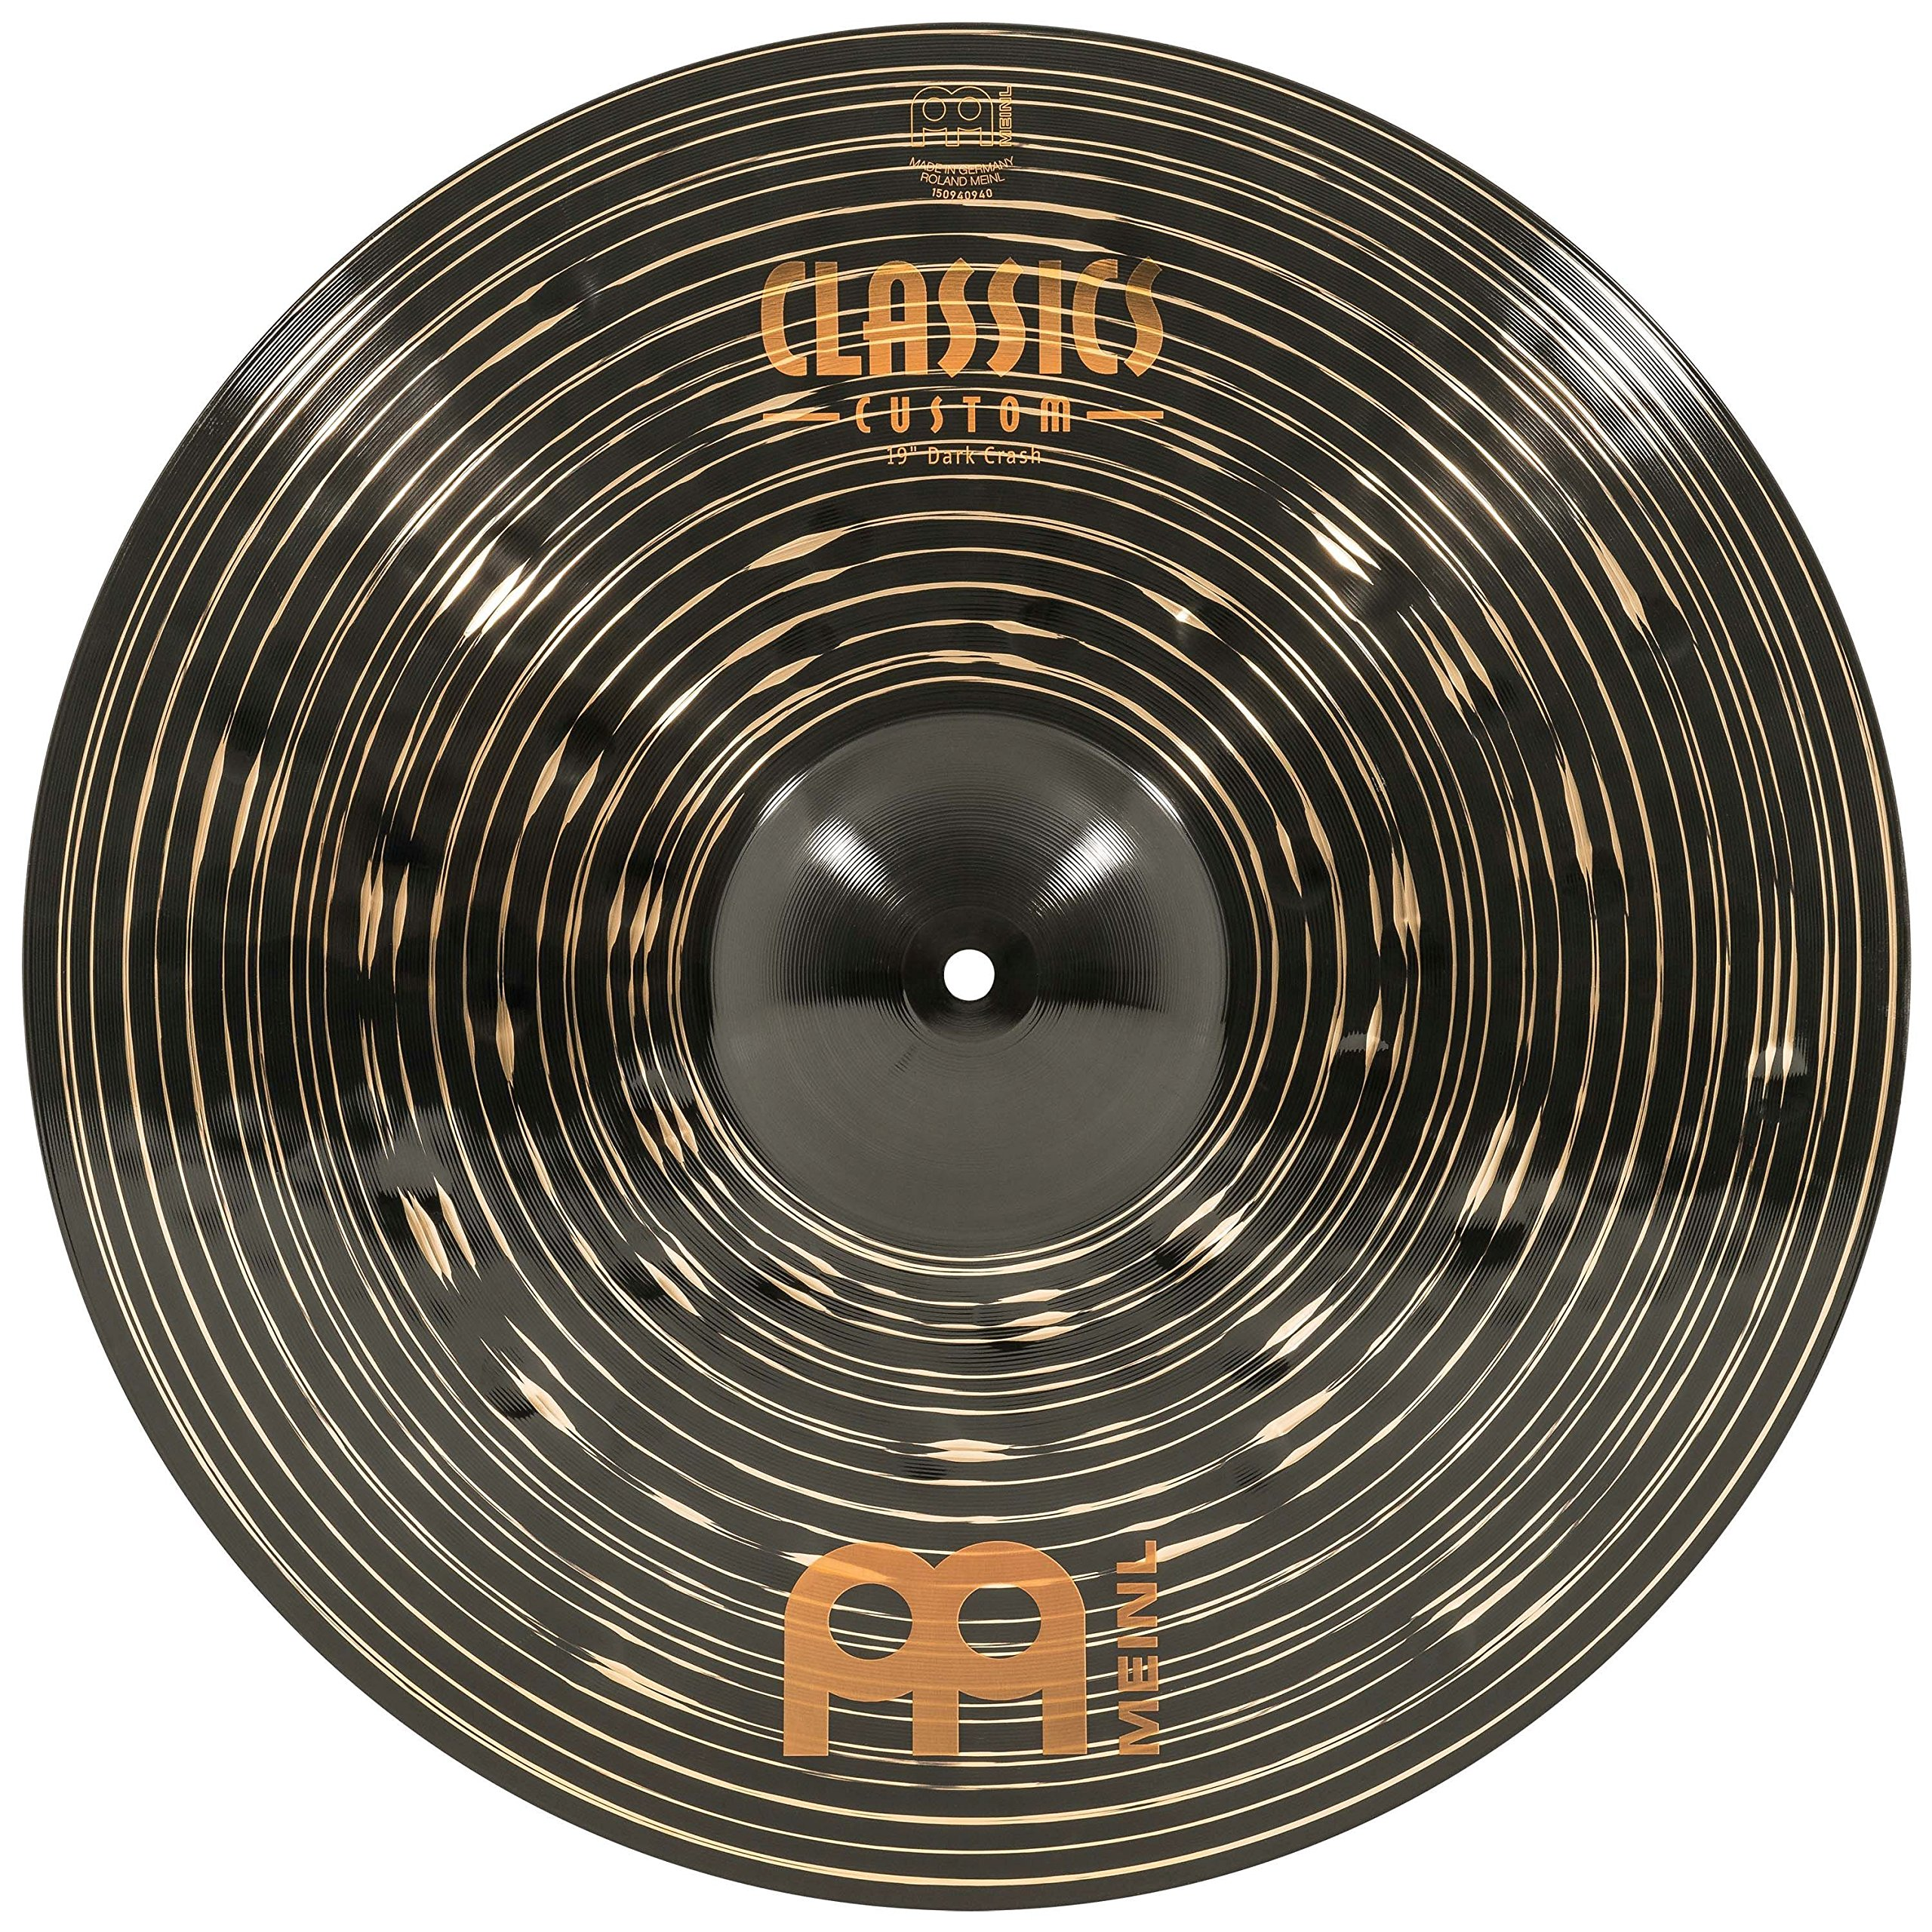 Meinl 19'' Crash Cymbal - Classics Custom Dark - Made in Germany, 2-YEAR WARRANTY (CC19DAC) by Meinl Cymbals